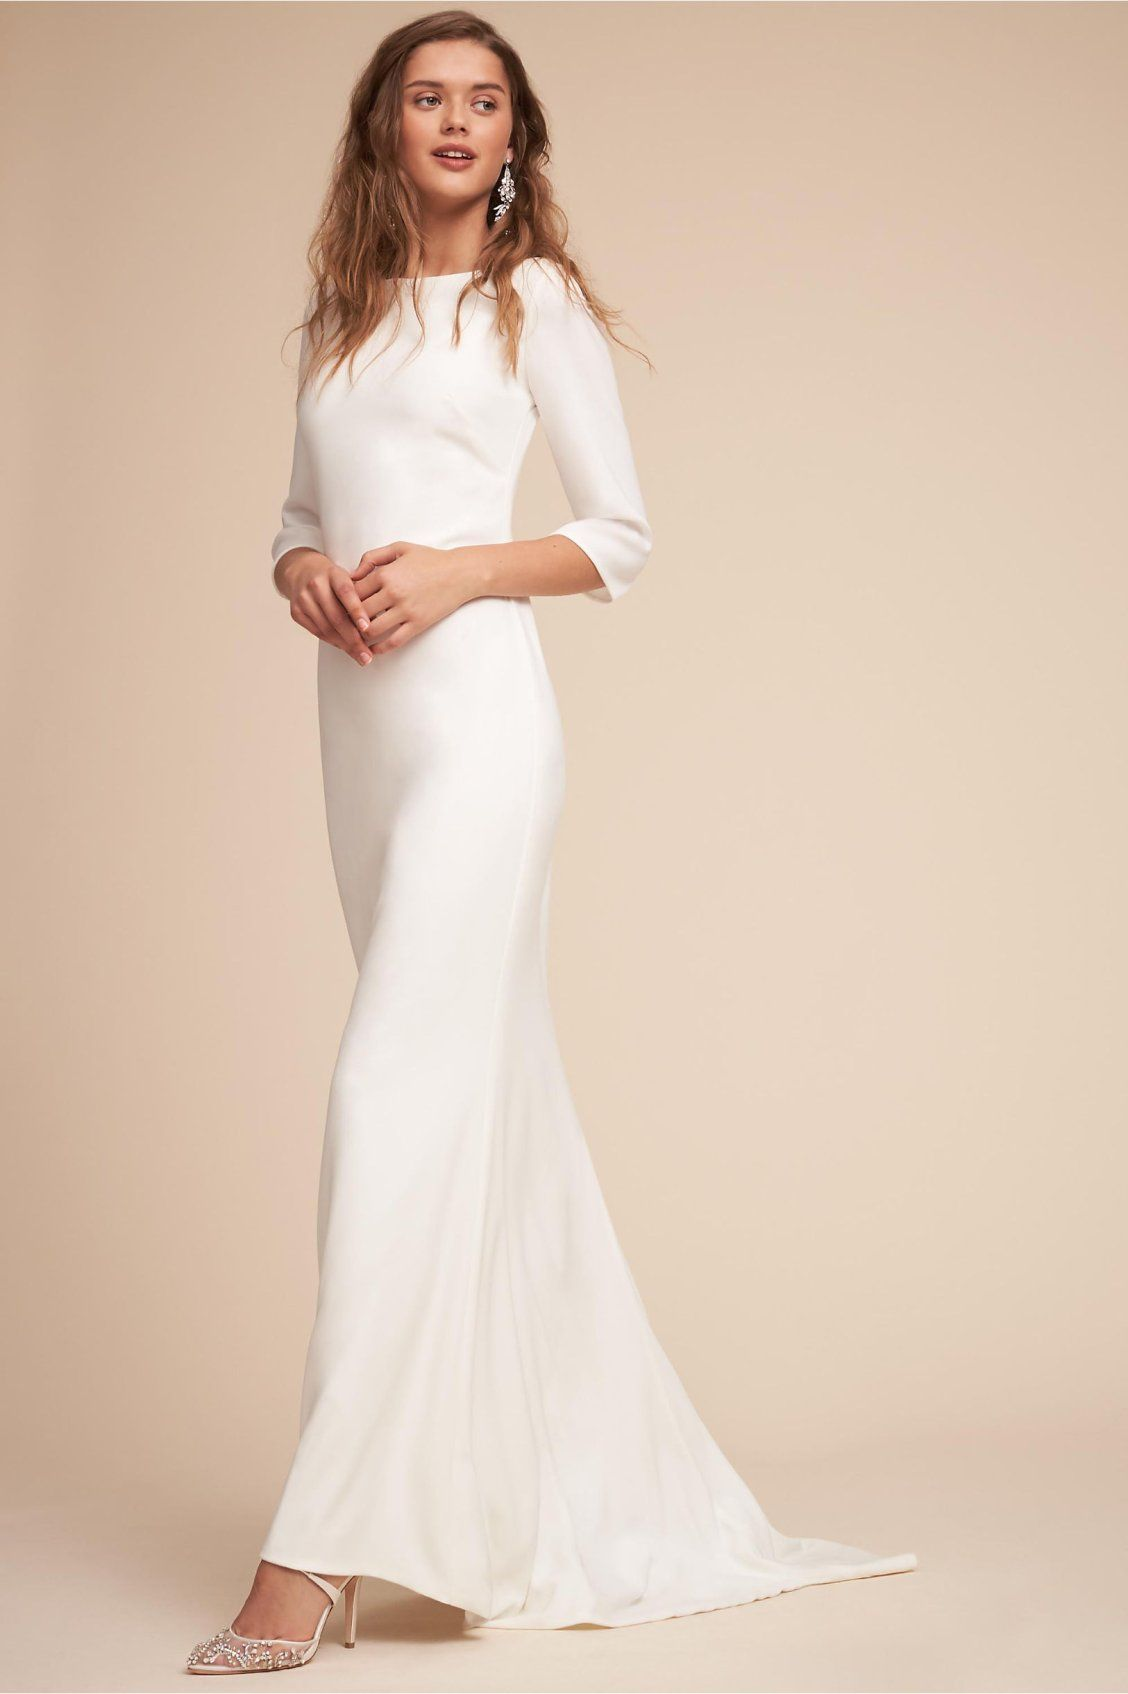 089d7dcec76f9 Bacall Gown from BHLDN | The Modern Bride | Wedding dresses, Bhldn ...